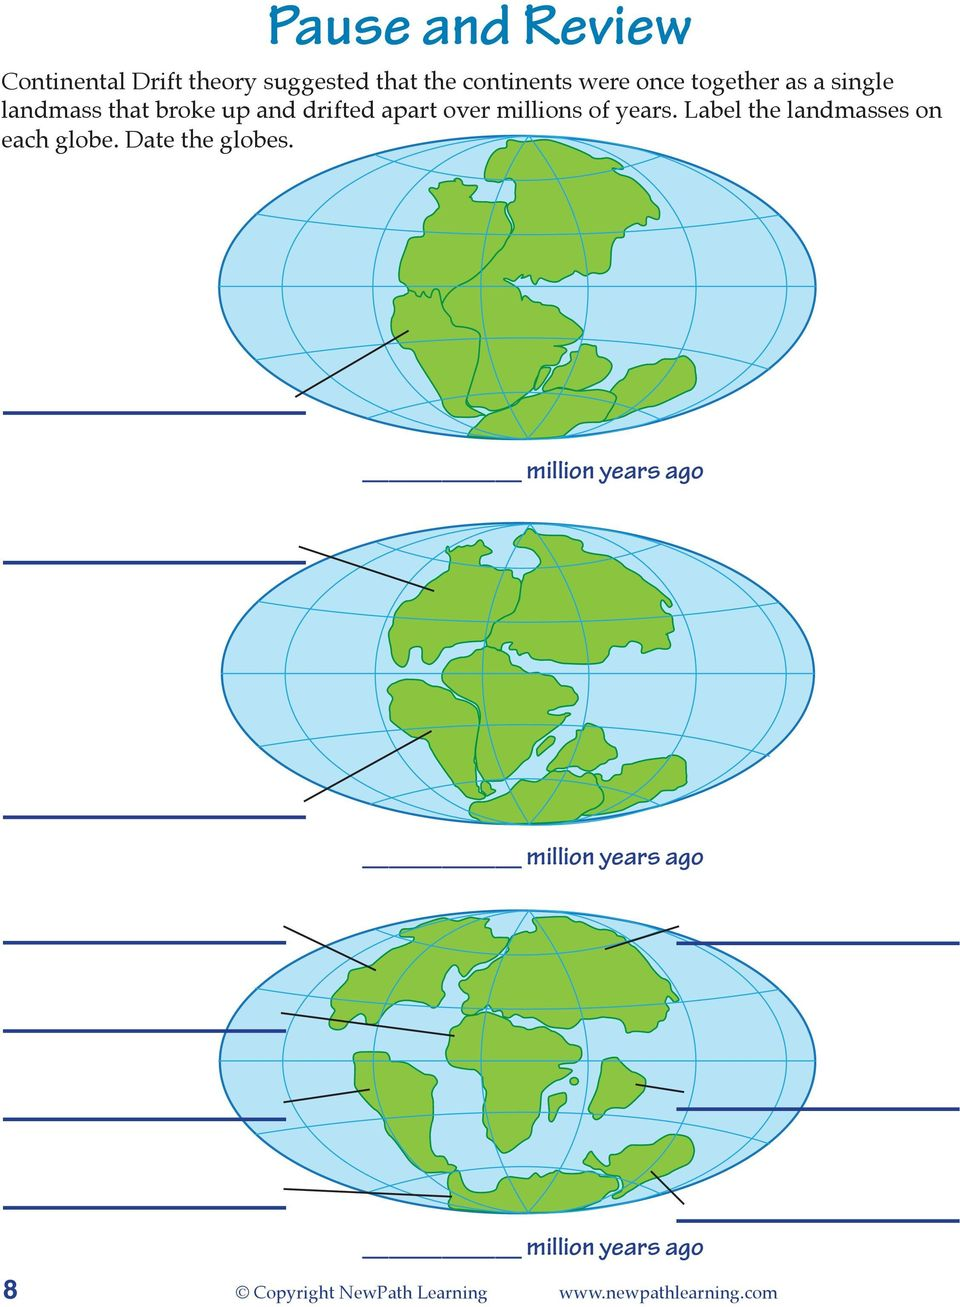 Label the landmasses on each globe. Date the globes.